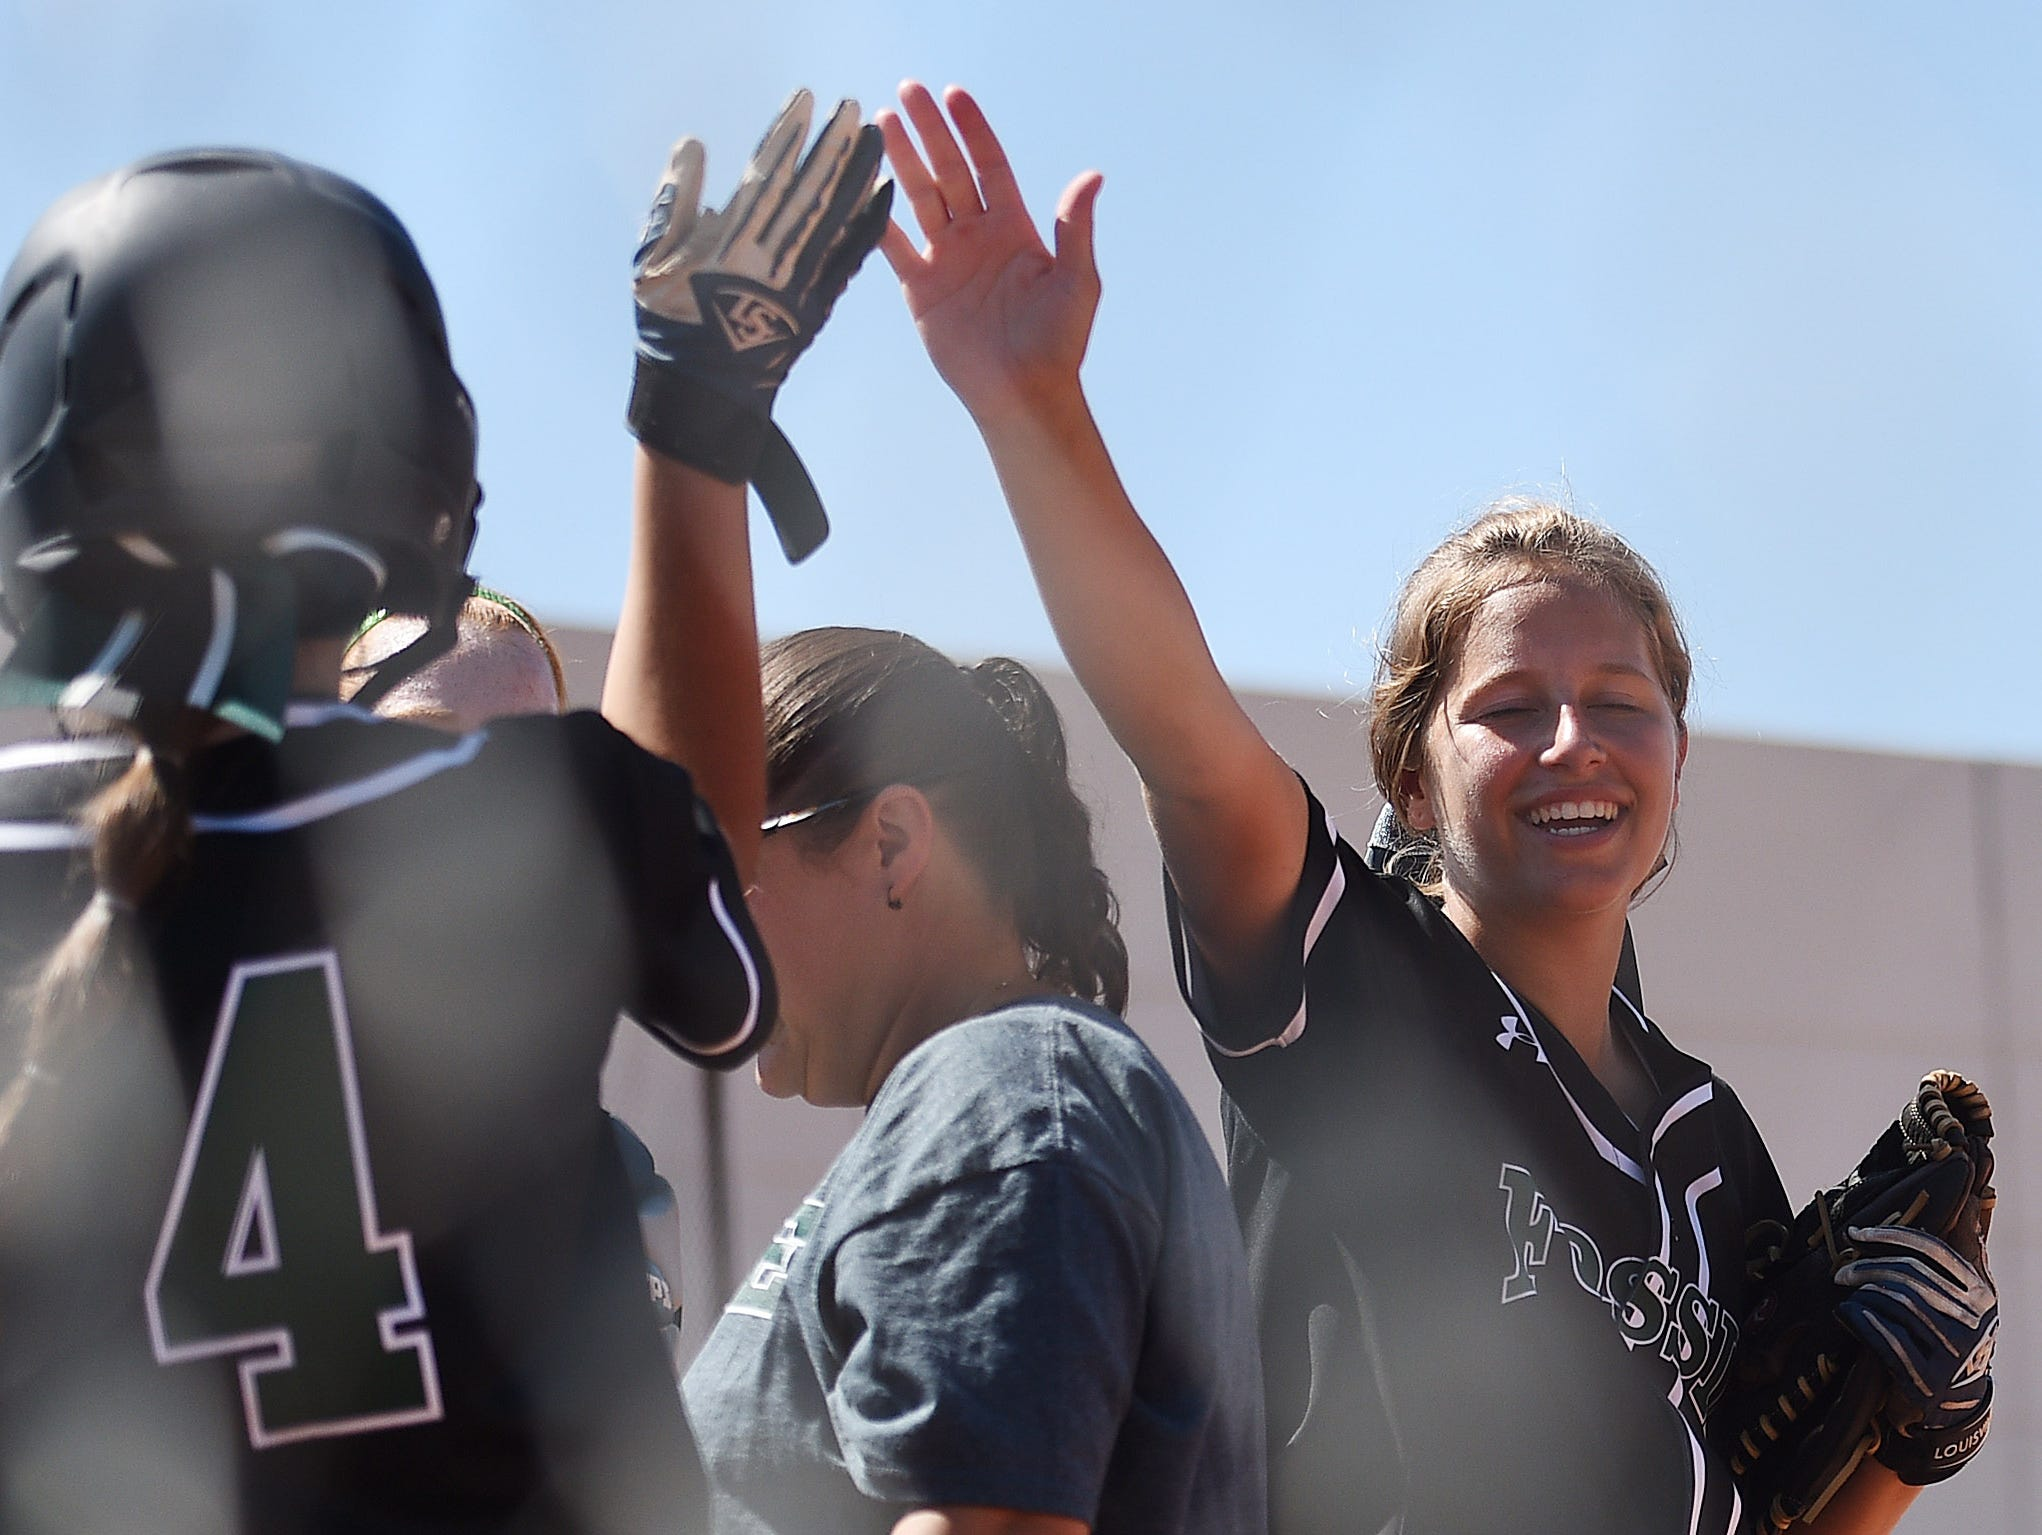 Fossil Ridge High School vs. Widefield in the CWSFA softball tournament on Friday, August 26, 2016.